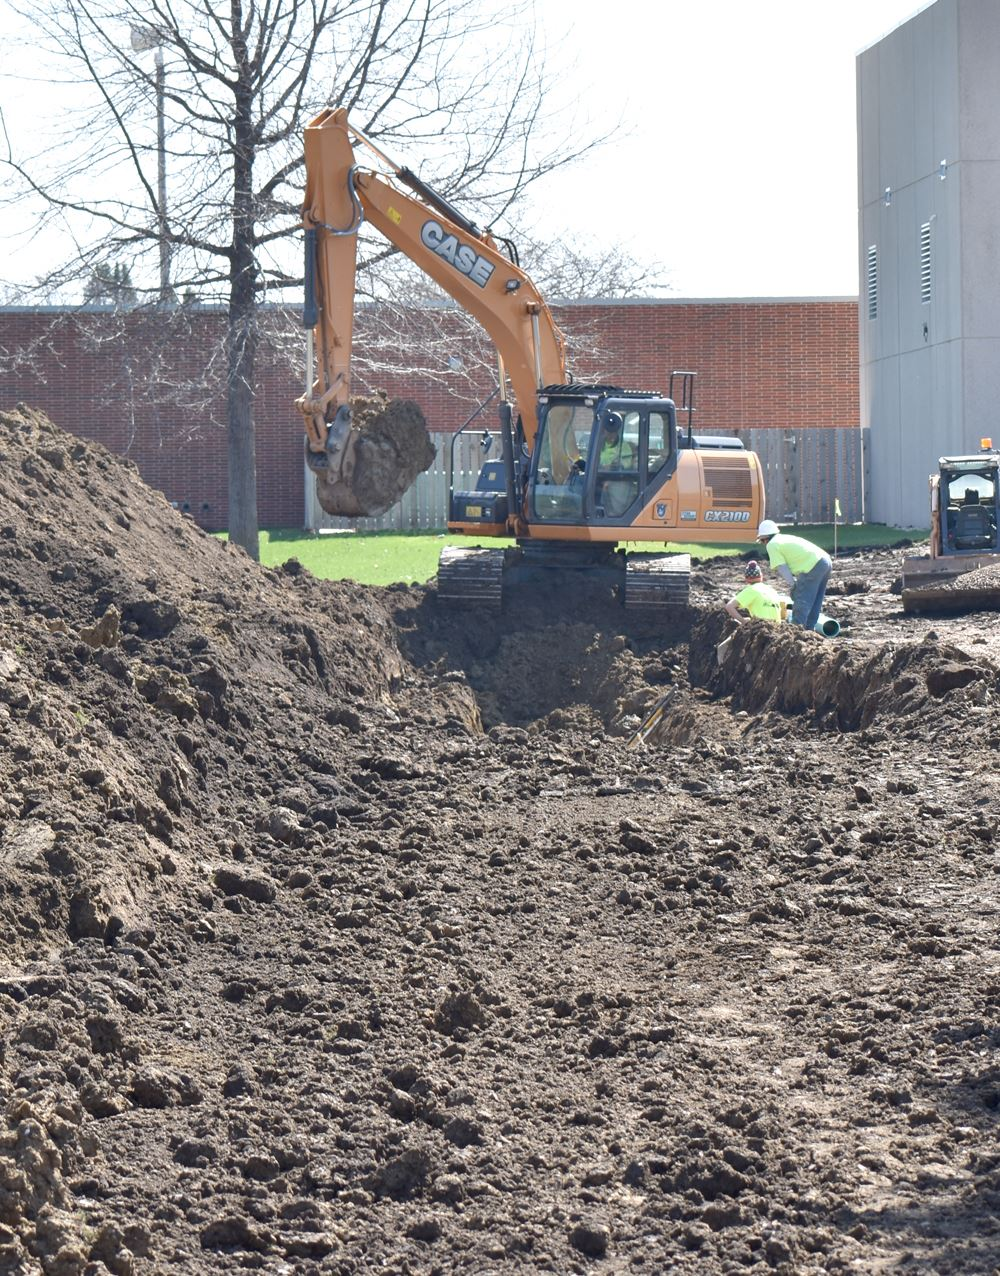 Digging at outdoor aquatic center site